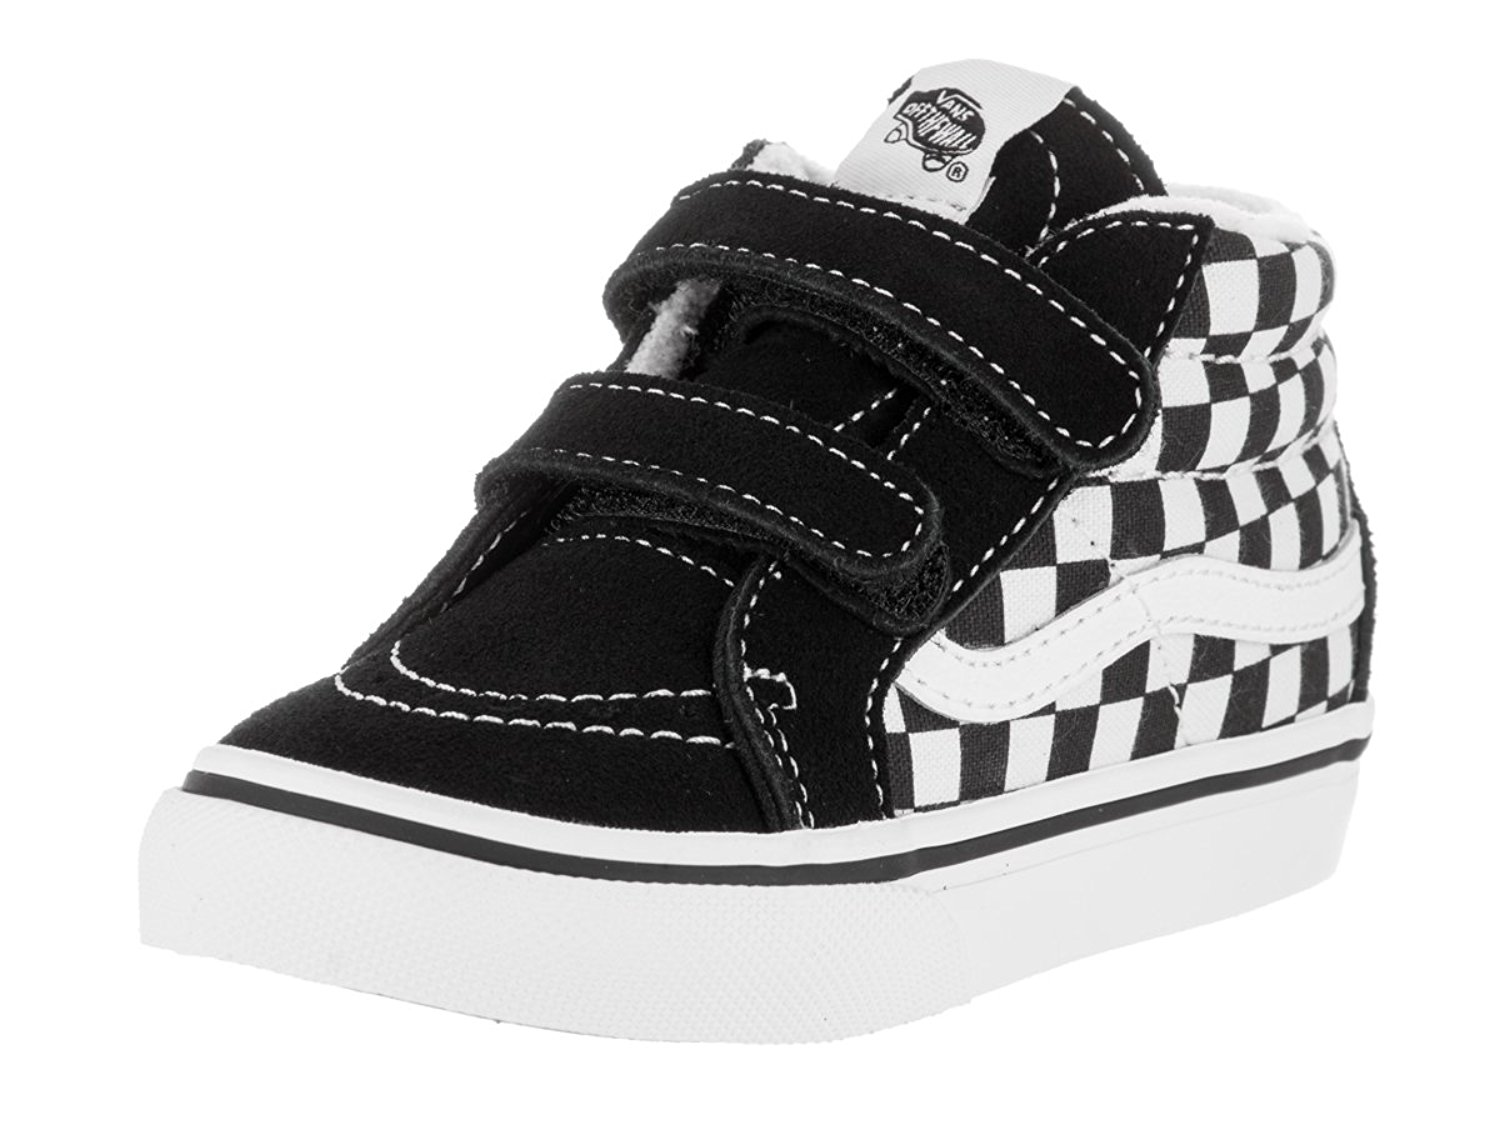 0993a67de5 Get Quotations · Vans Toddler Sk8-Mid Reissue V (Checkerboard) Skate Shoe